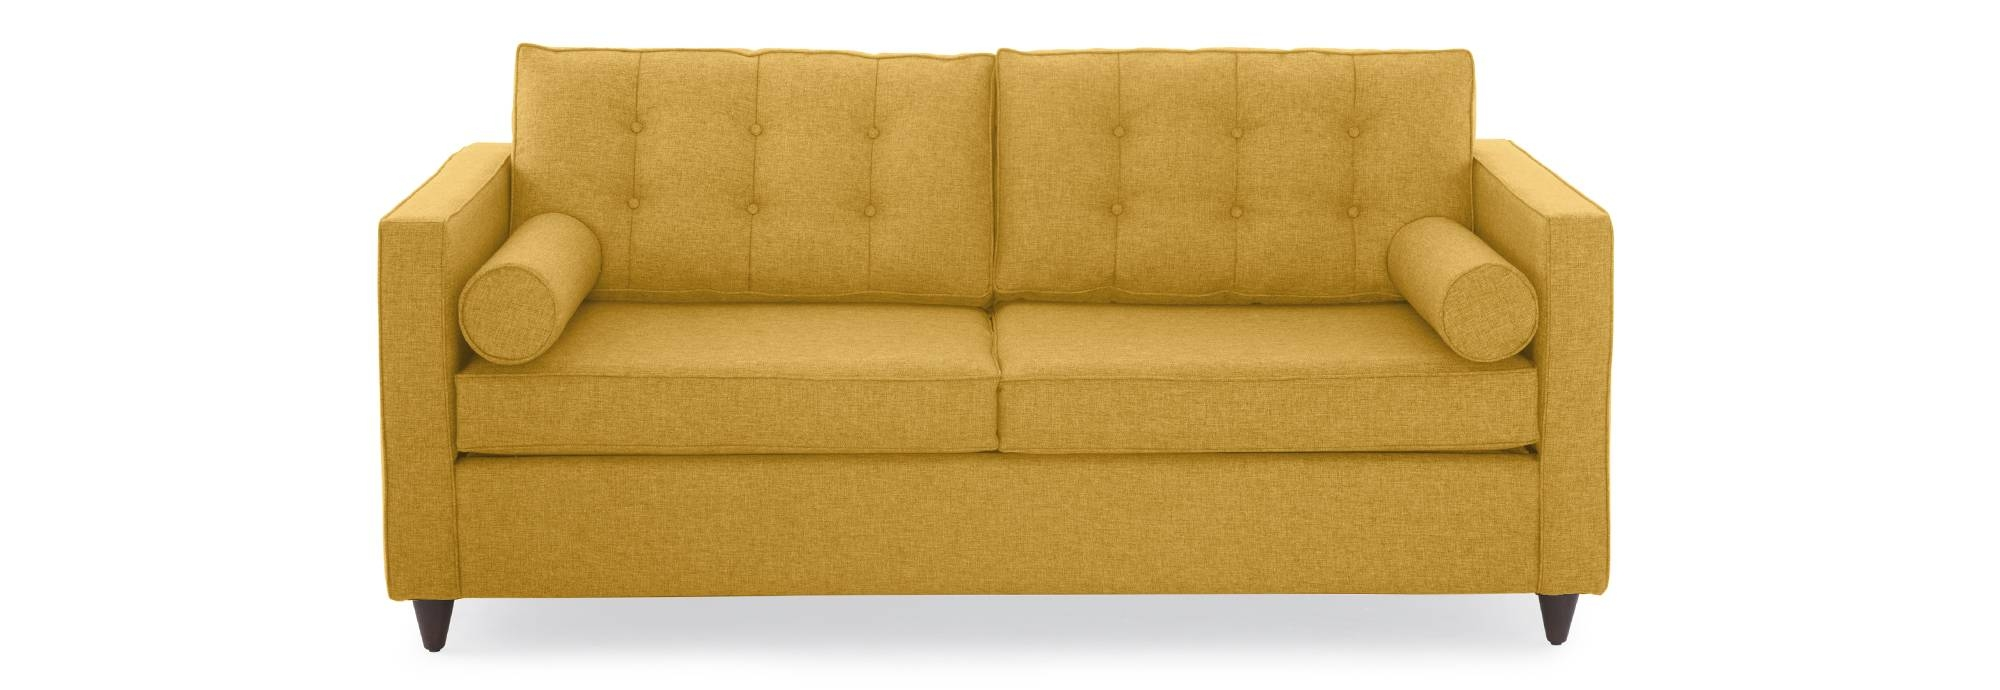 Braxton Sleeper Sofa | Joybird throughout Braxton Sofas (Image 7 of 15)